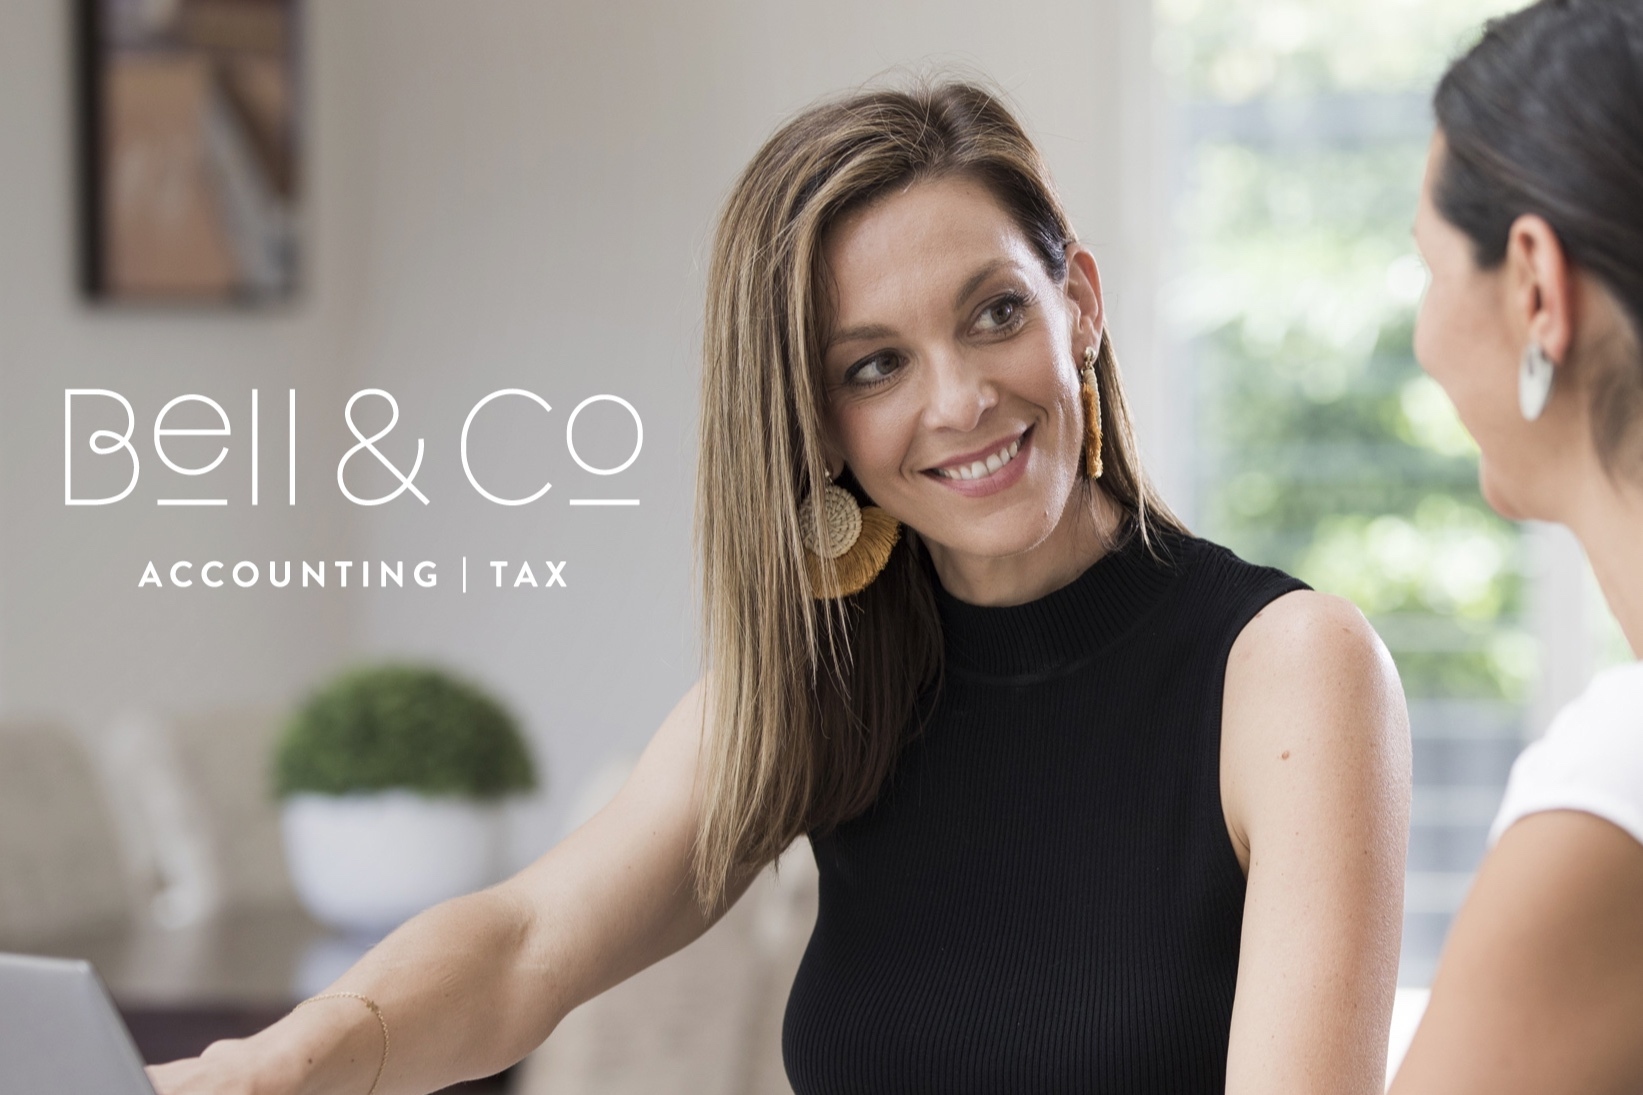 Bell & Co   Unleashing a start-up with on-point brand and visual identity.